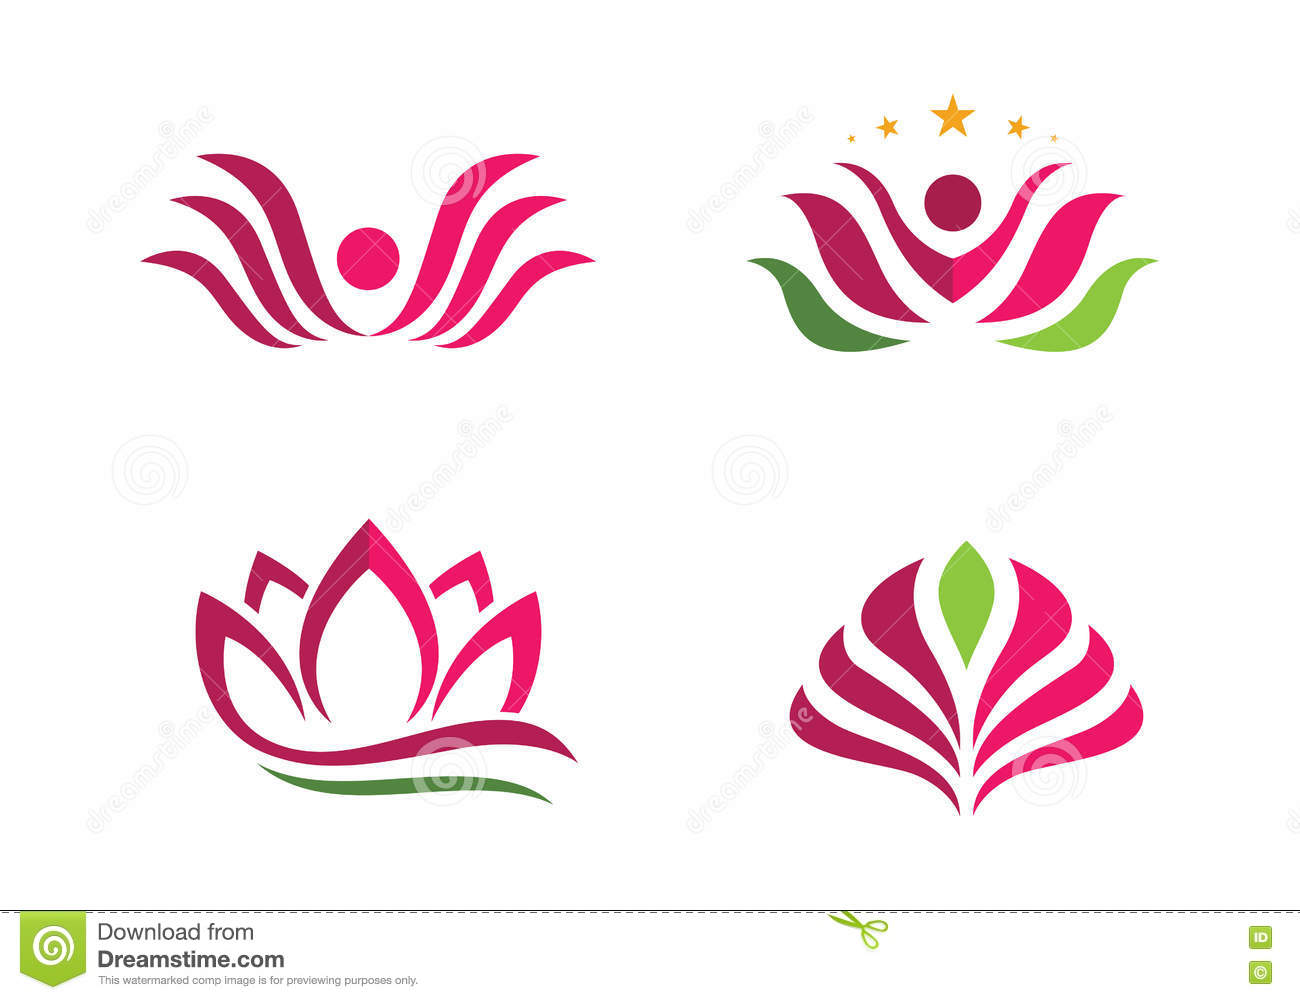 Stylized lotus flower icon vector background stock vector stylized lotus flower icon vector background beauty icons izmirmasajfo Images